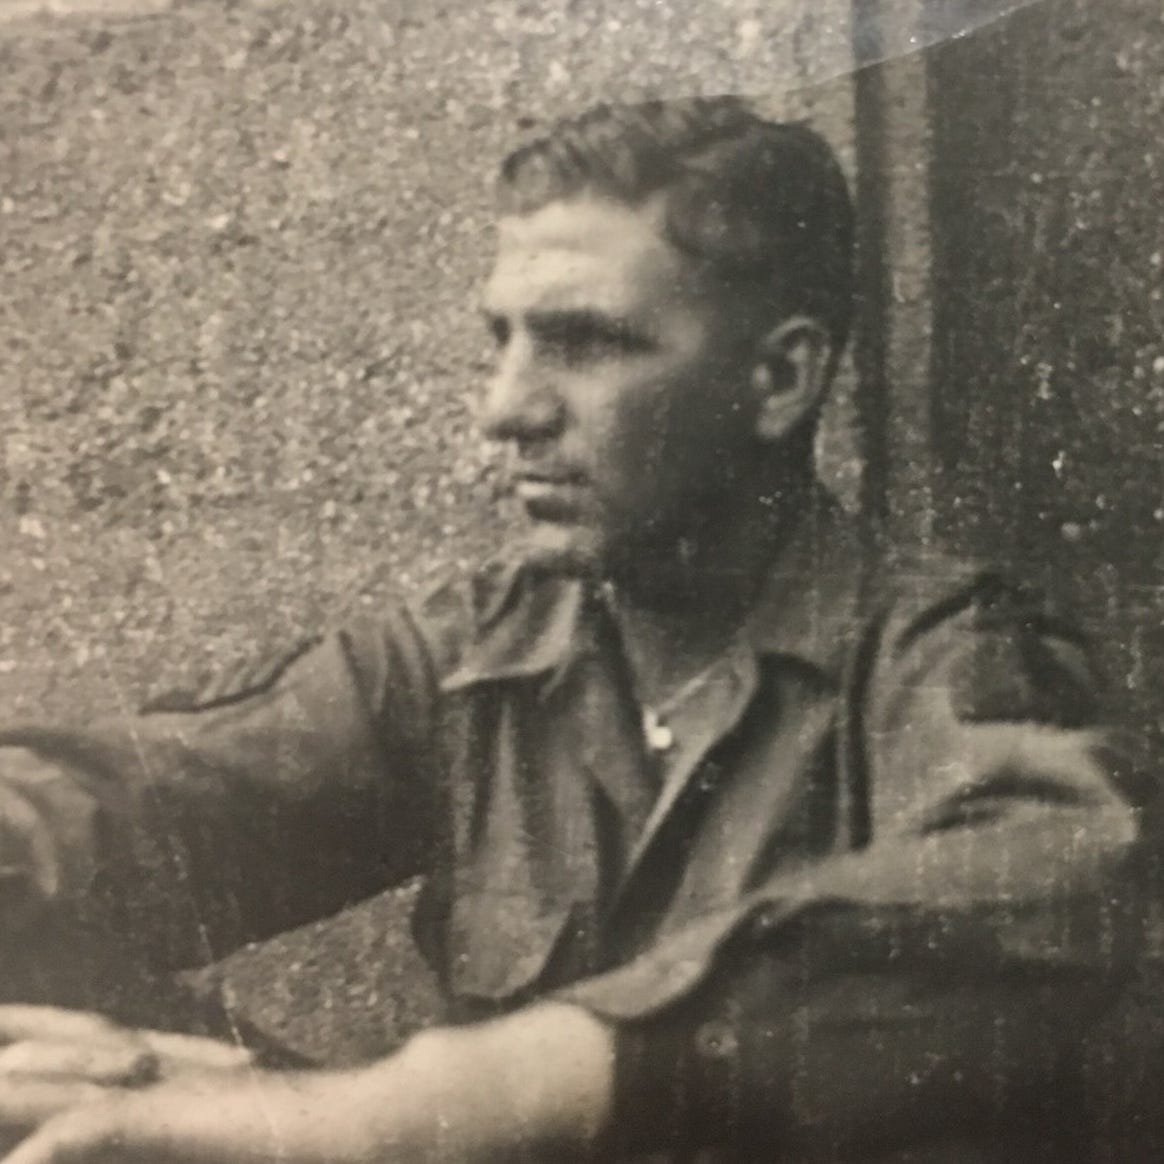 Carl Mann stormed Omaha Beach; he'll be buried at Arlington on the D-Day anniversary